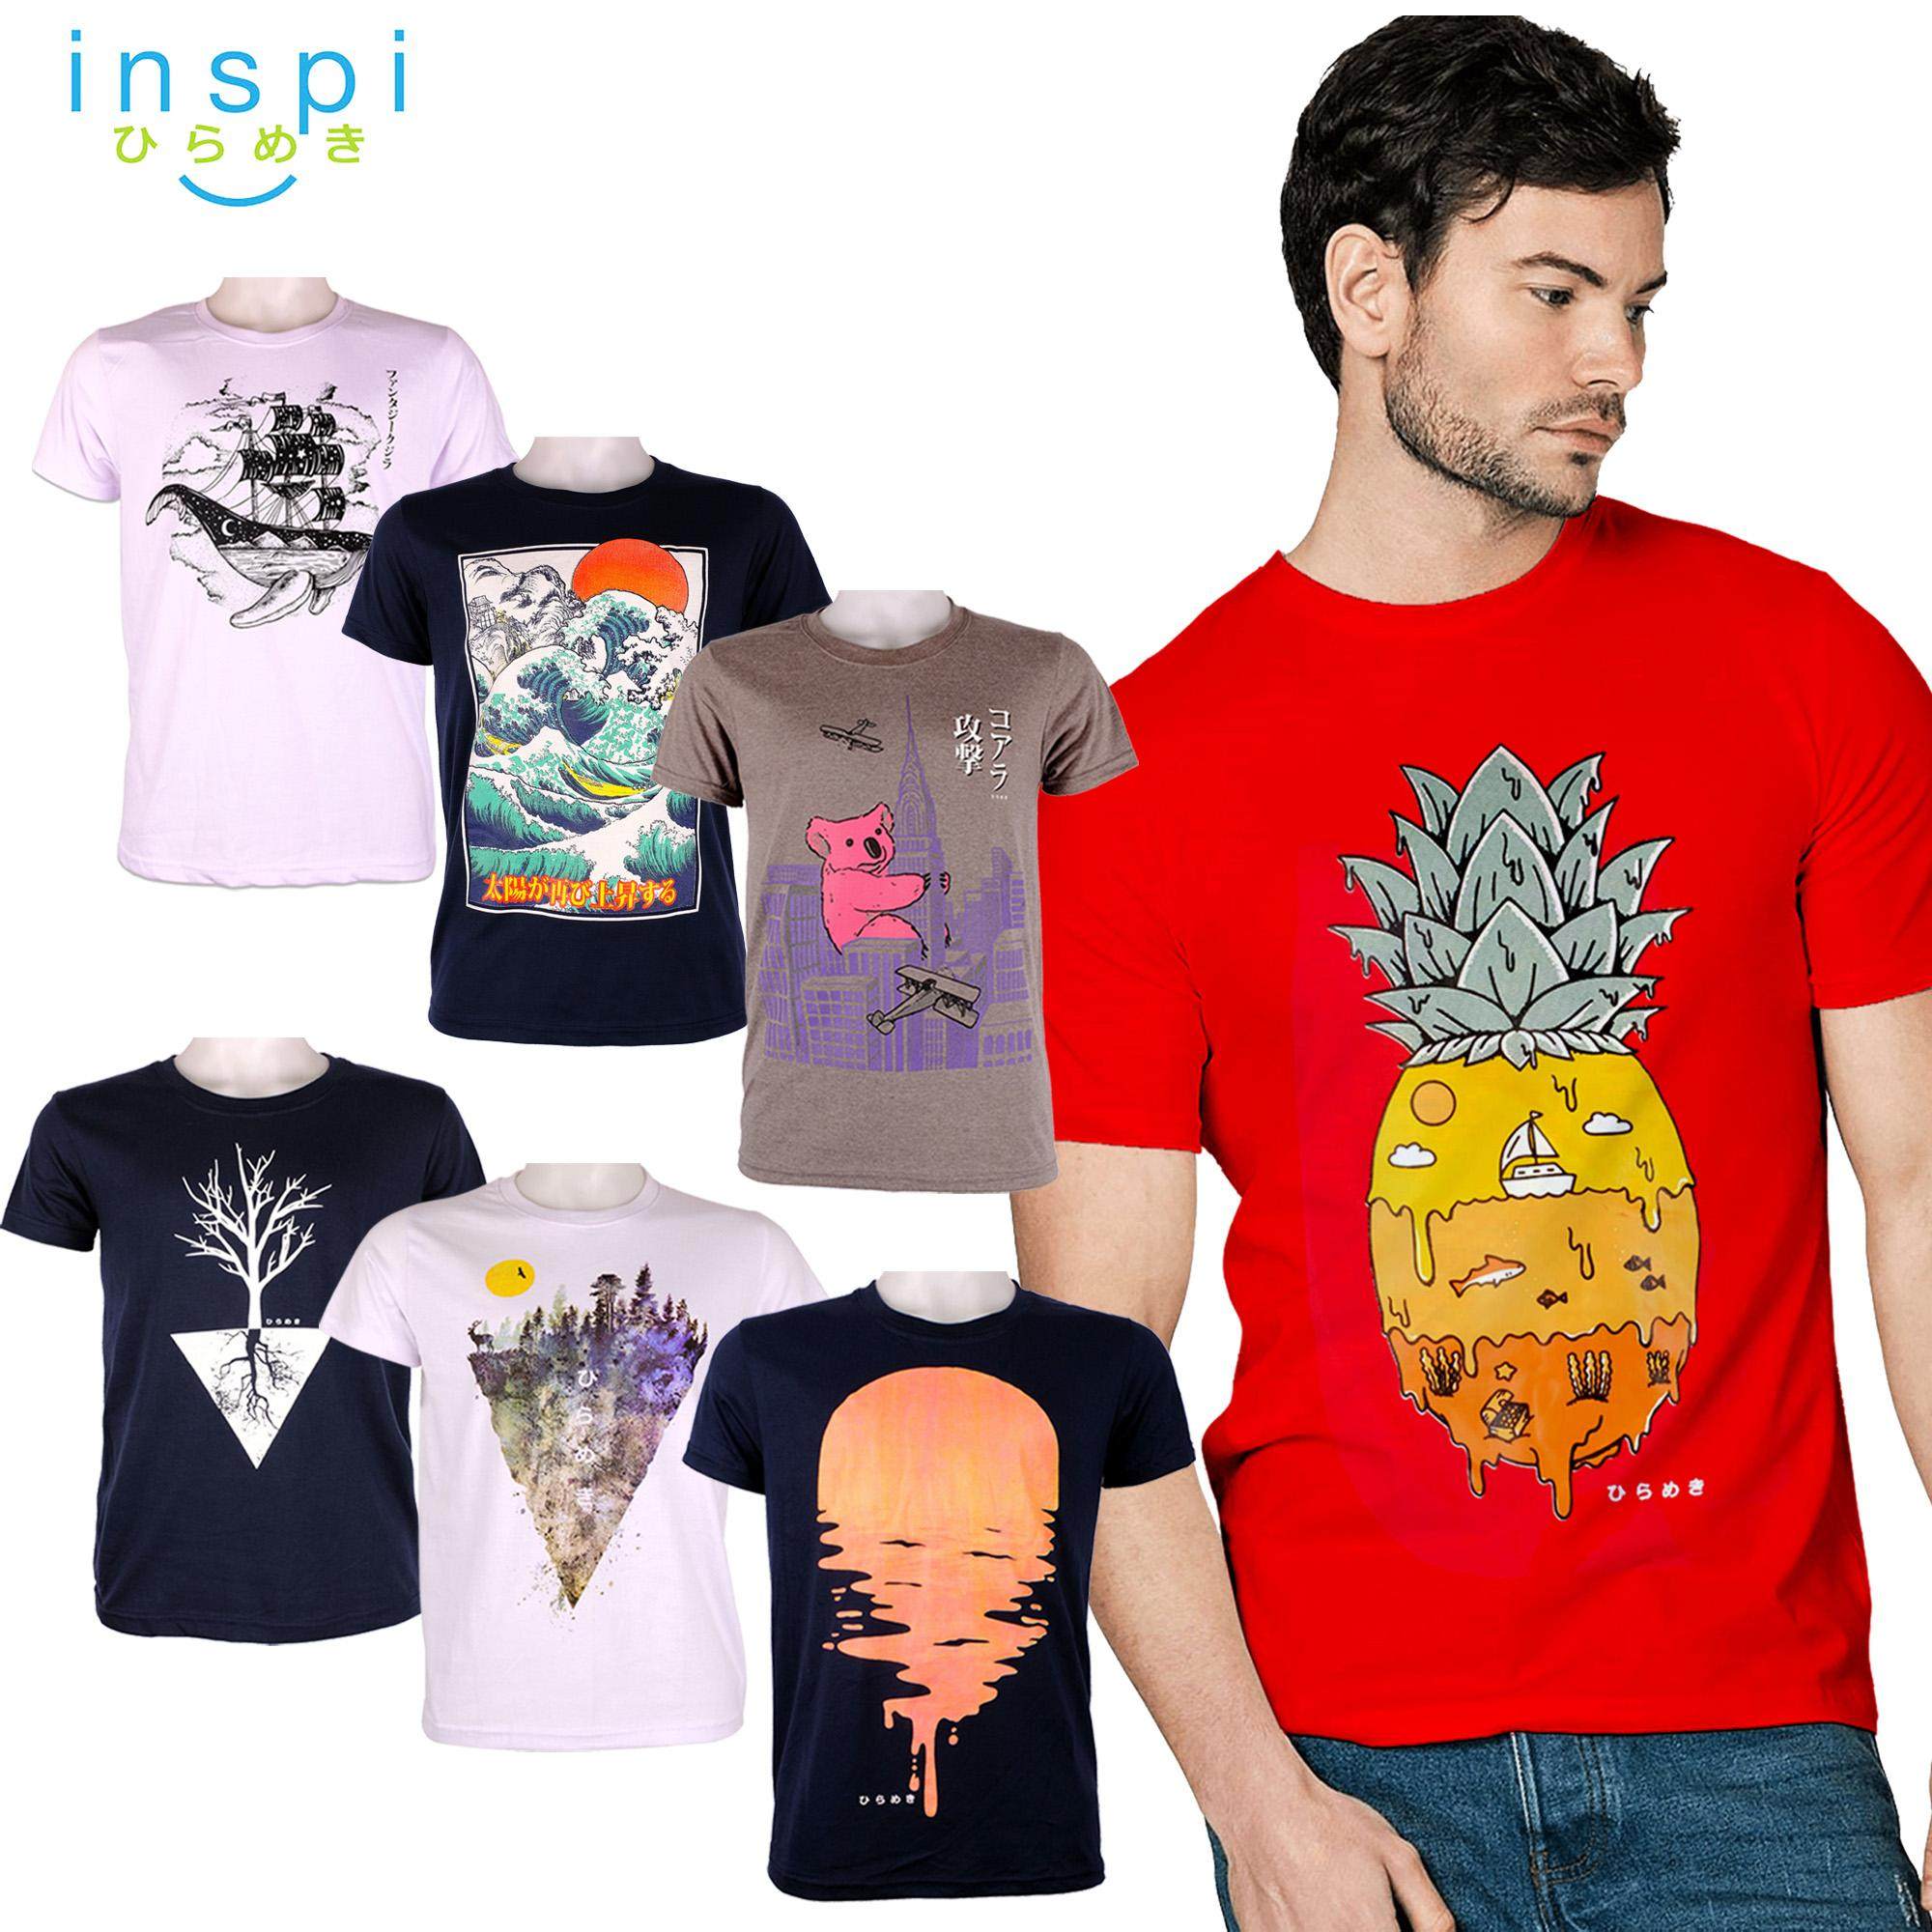 239c92d4c09 Philippines. INSPI Tees Nature Collection tshirt printed graphic tee Mens t  shirt shirts for men tshirts sale